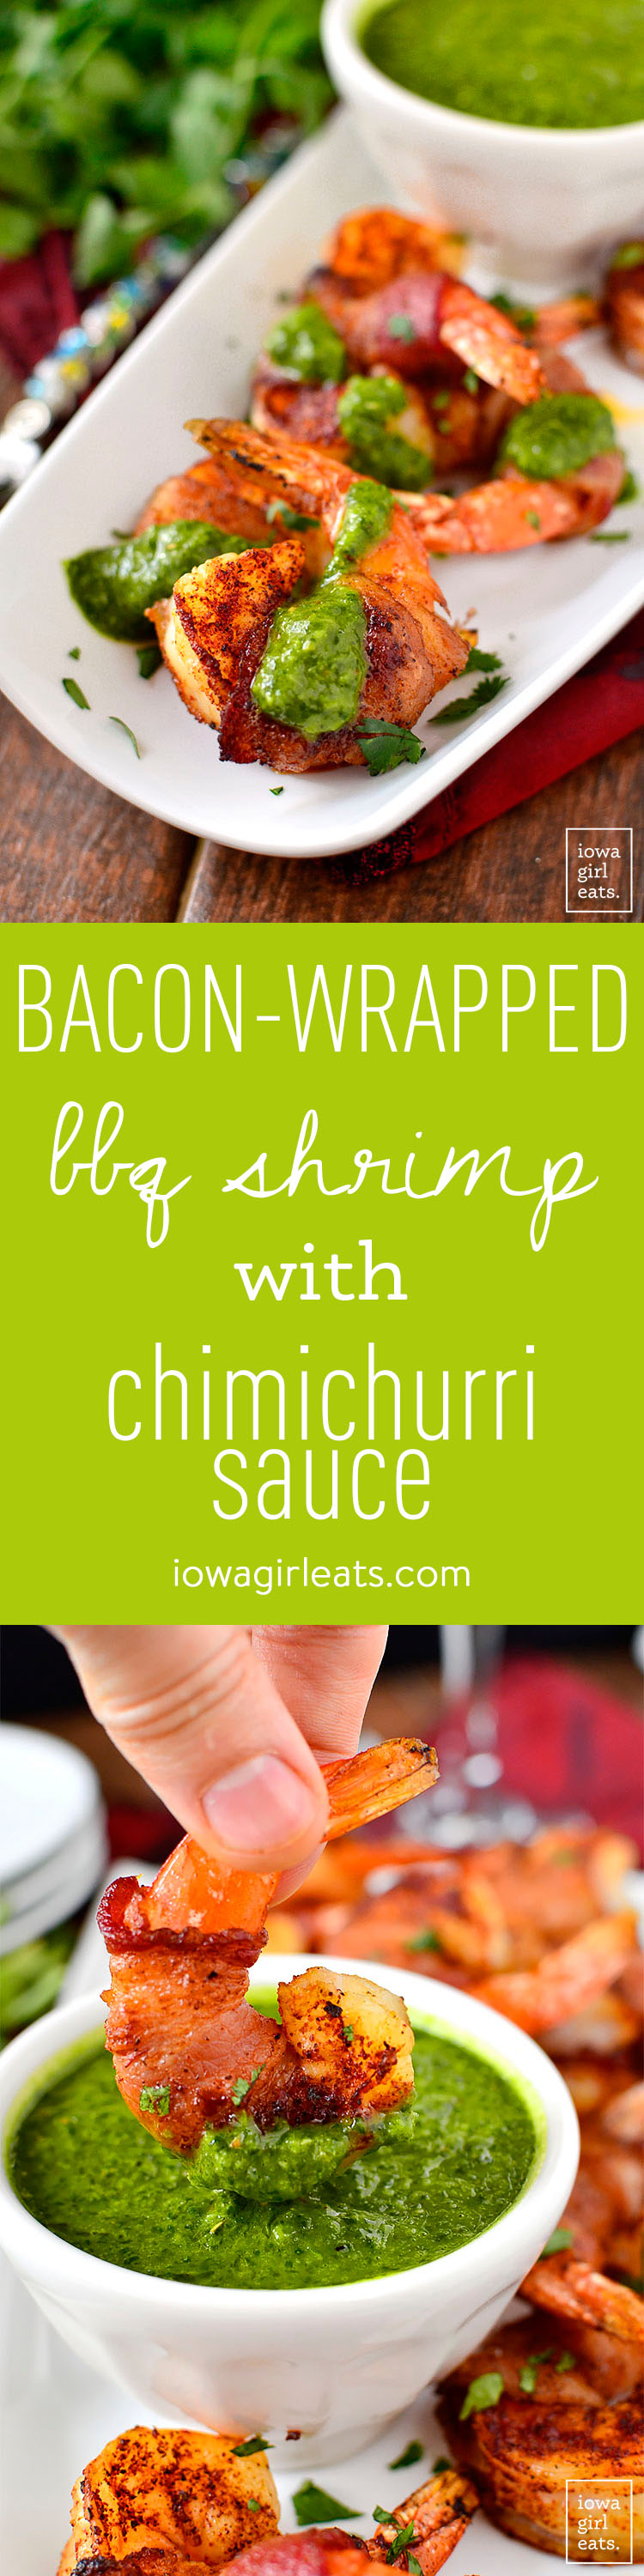 Bacon-Wrapped BBQ Shrimp with Chimichurri Dipping Sauce is an easy and irresistible gluten-free appetizer. Bursting with both fresh and savory flavors! | iowagirleats.com